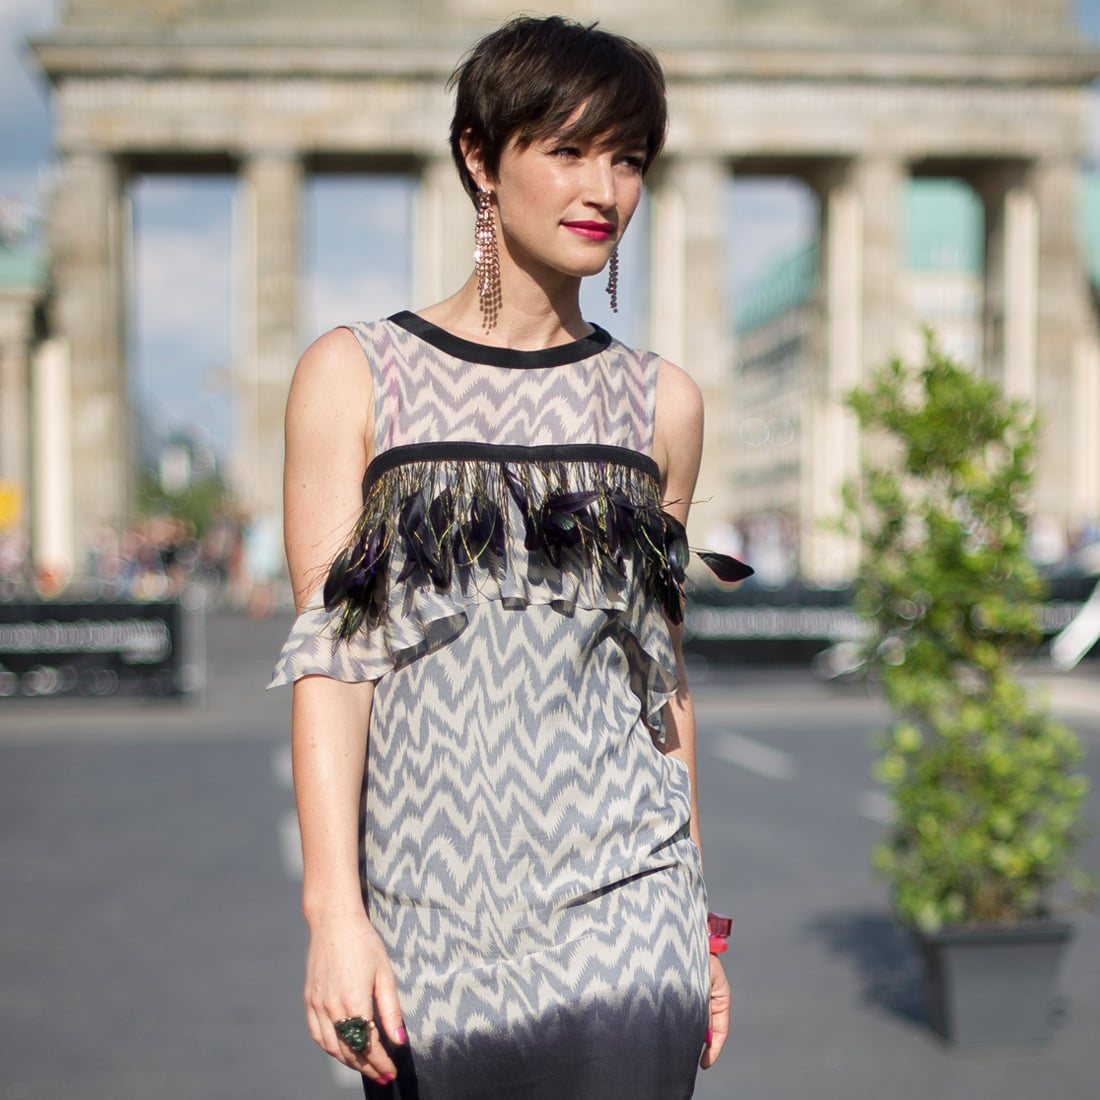 Best summer street style popsugar fashion - Best Summer Street Style Popsugar Fashion 40